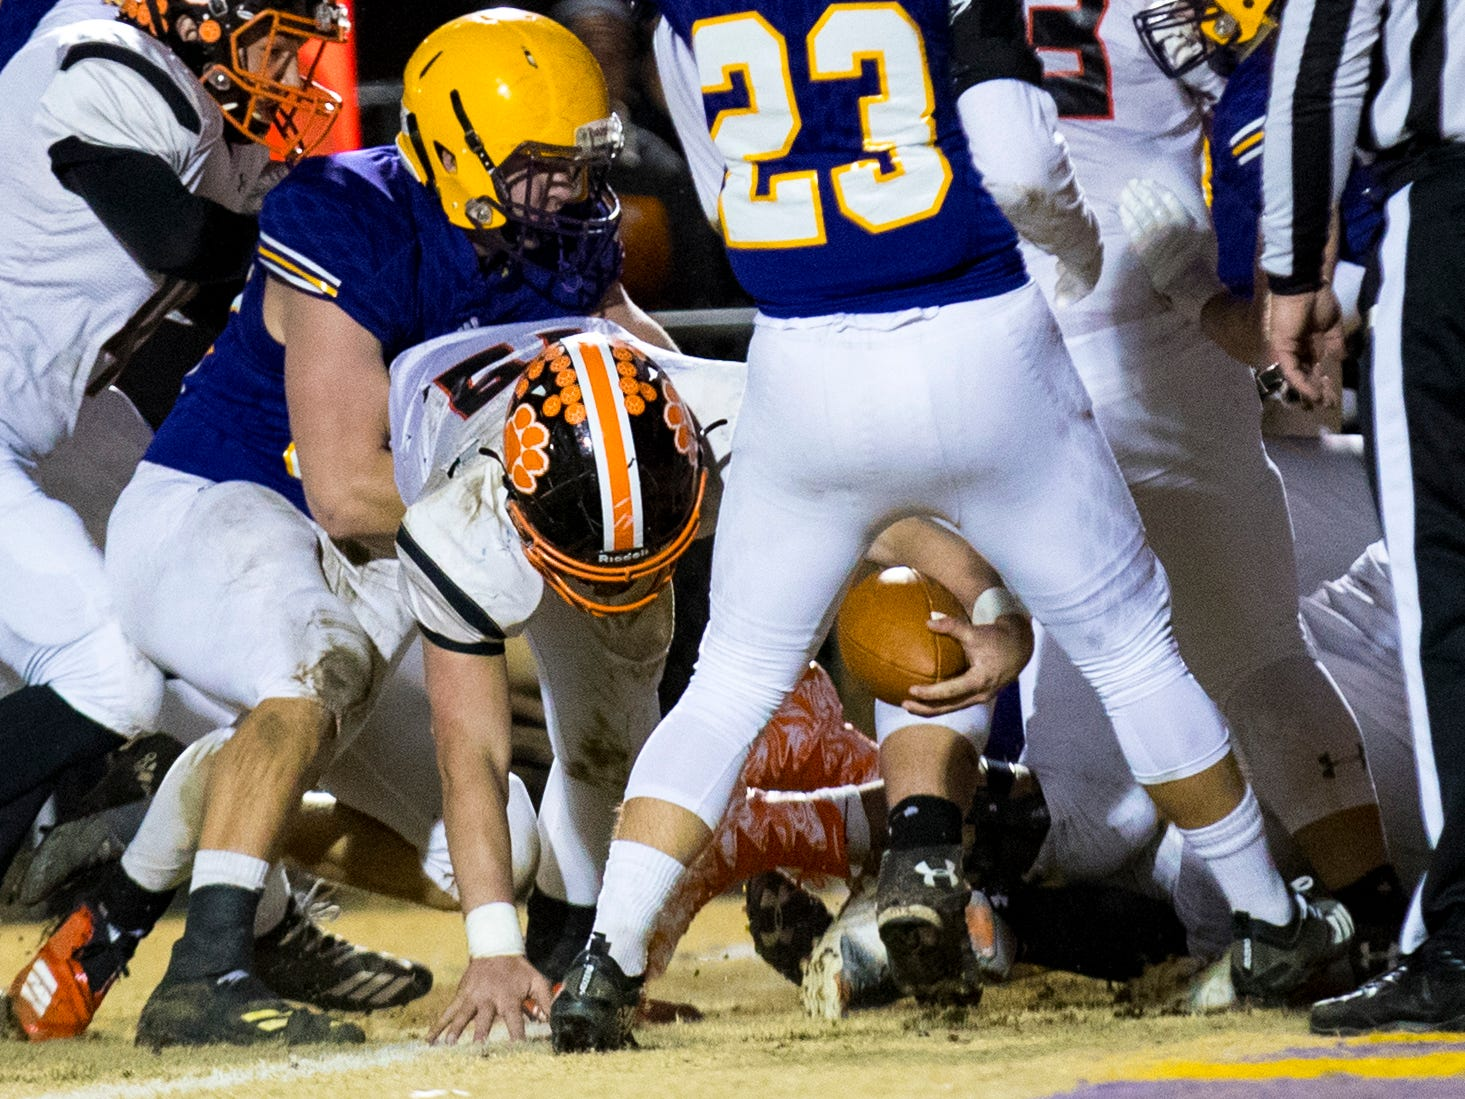 Meigs County's Aaron Swafford (19) falls into the endzone for a touchdown during Trousdale County's game against Meigs County at Jim Satterfield Stadium in Hartsville on Friday, Nov. 23, 2018.